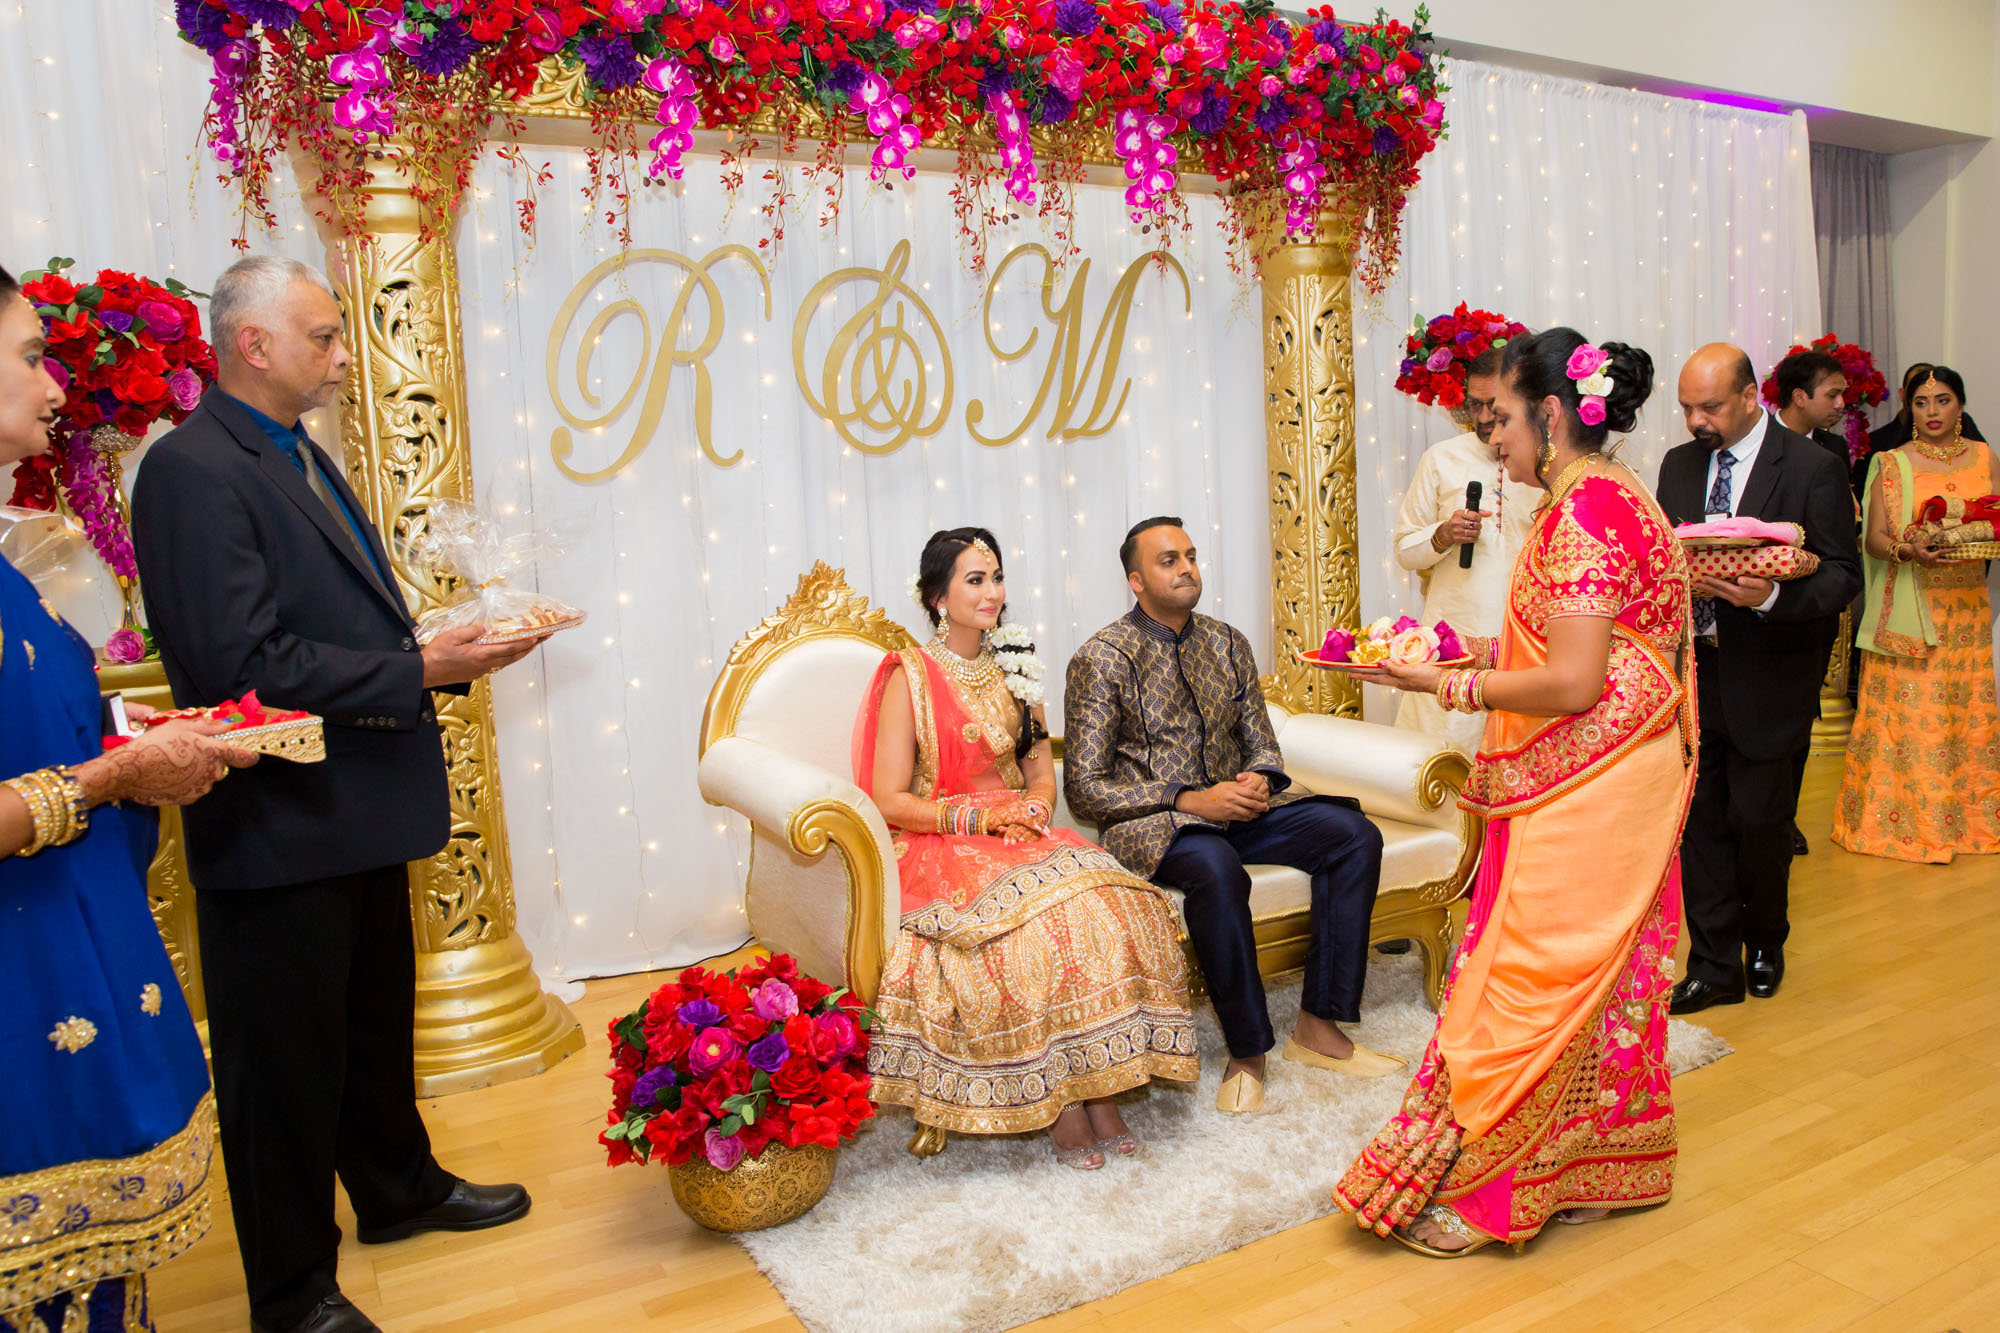 Manisha_Rohil_EngagementCeremony_CorsoNorthlakes_PhotographerAOsetroff_Highlights_Web-54